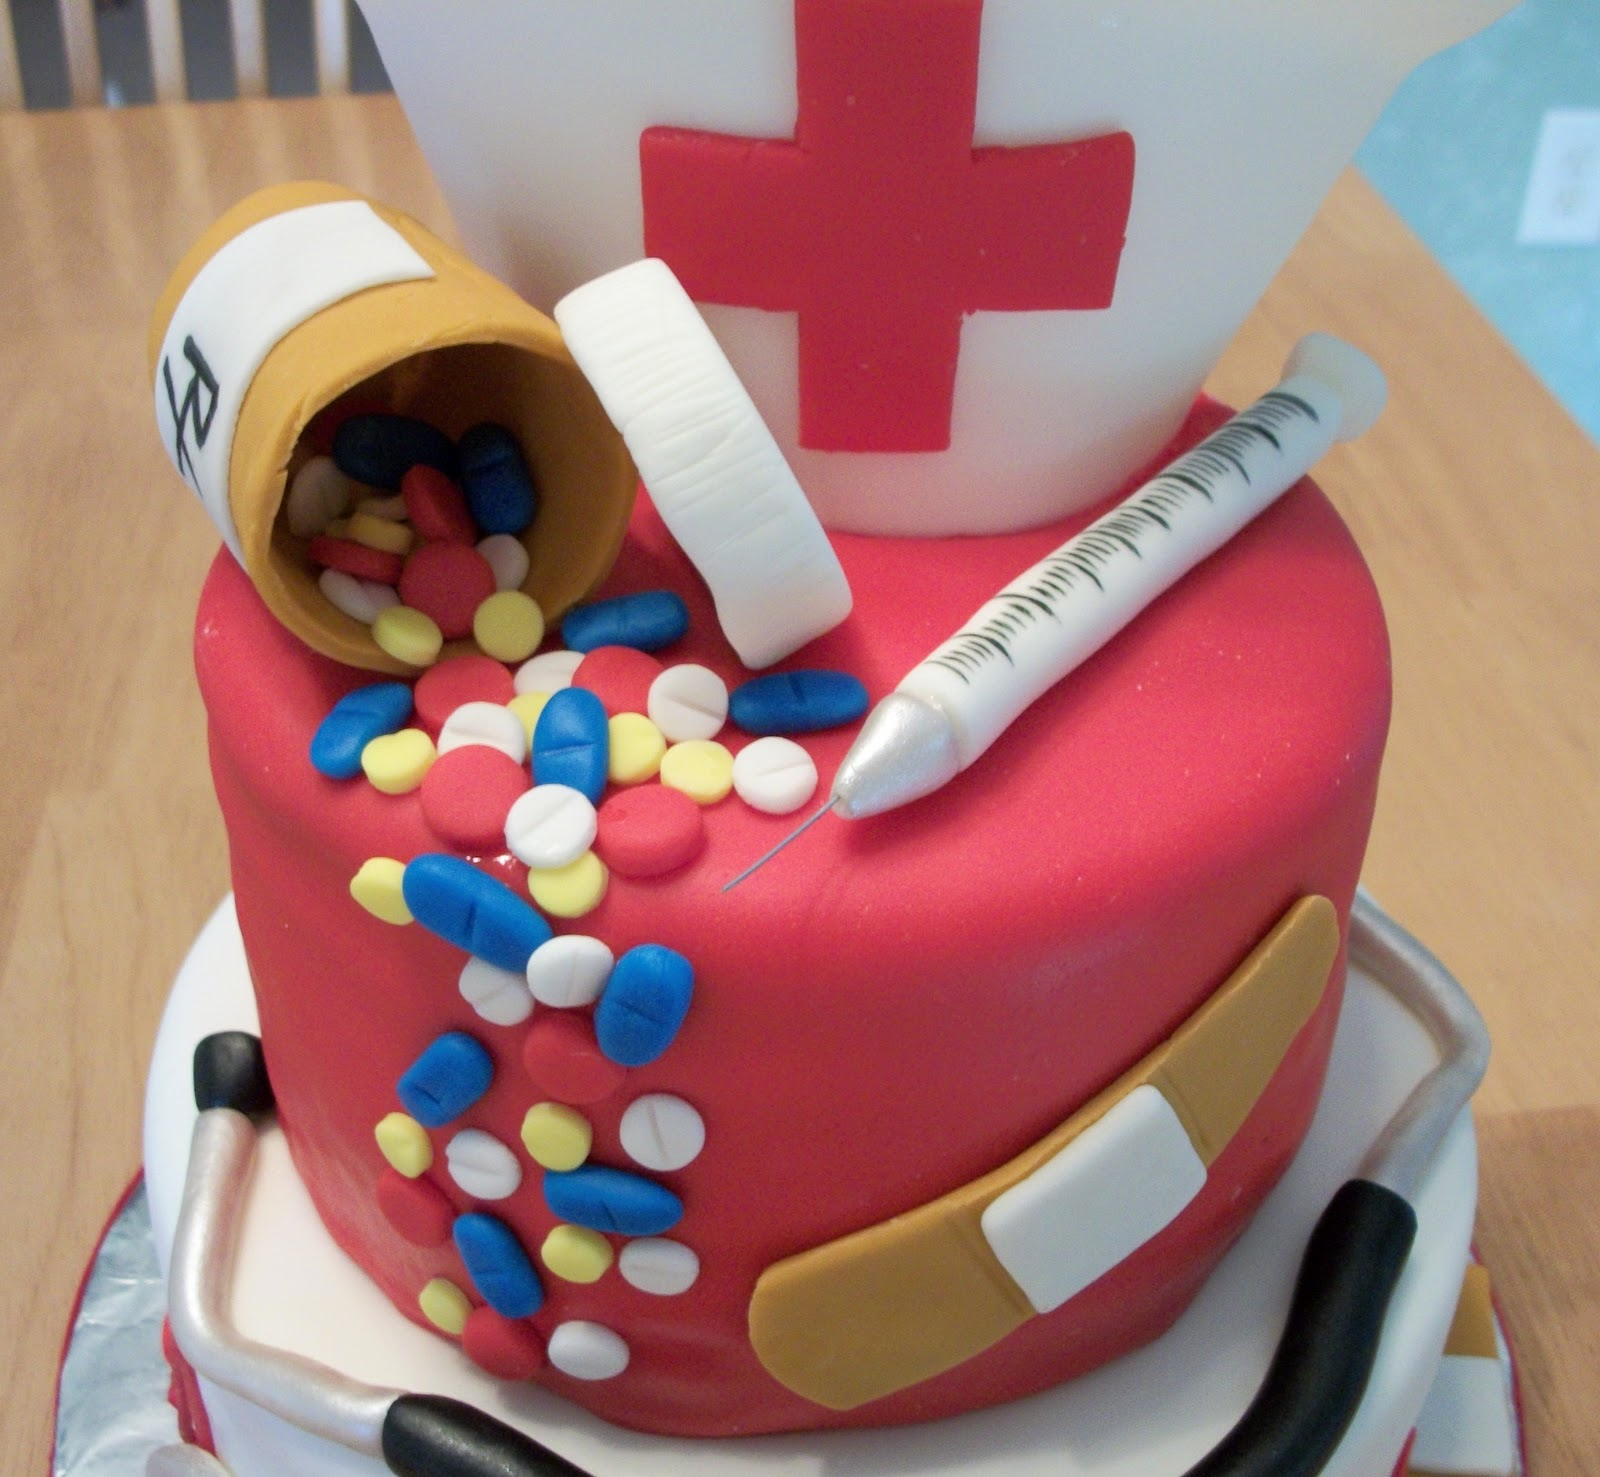 Cake Decorations For Nurses : Pin Nurses Cake Ideas Kootationcom Cake on Pinterest